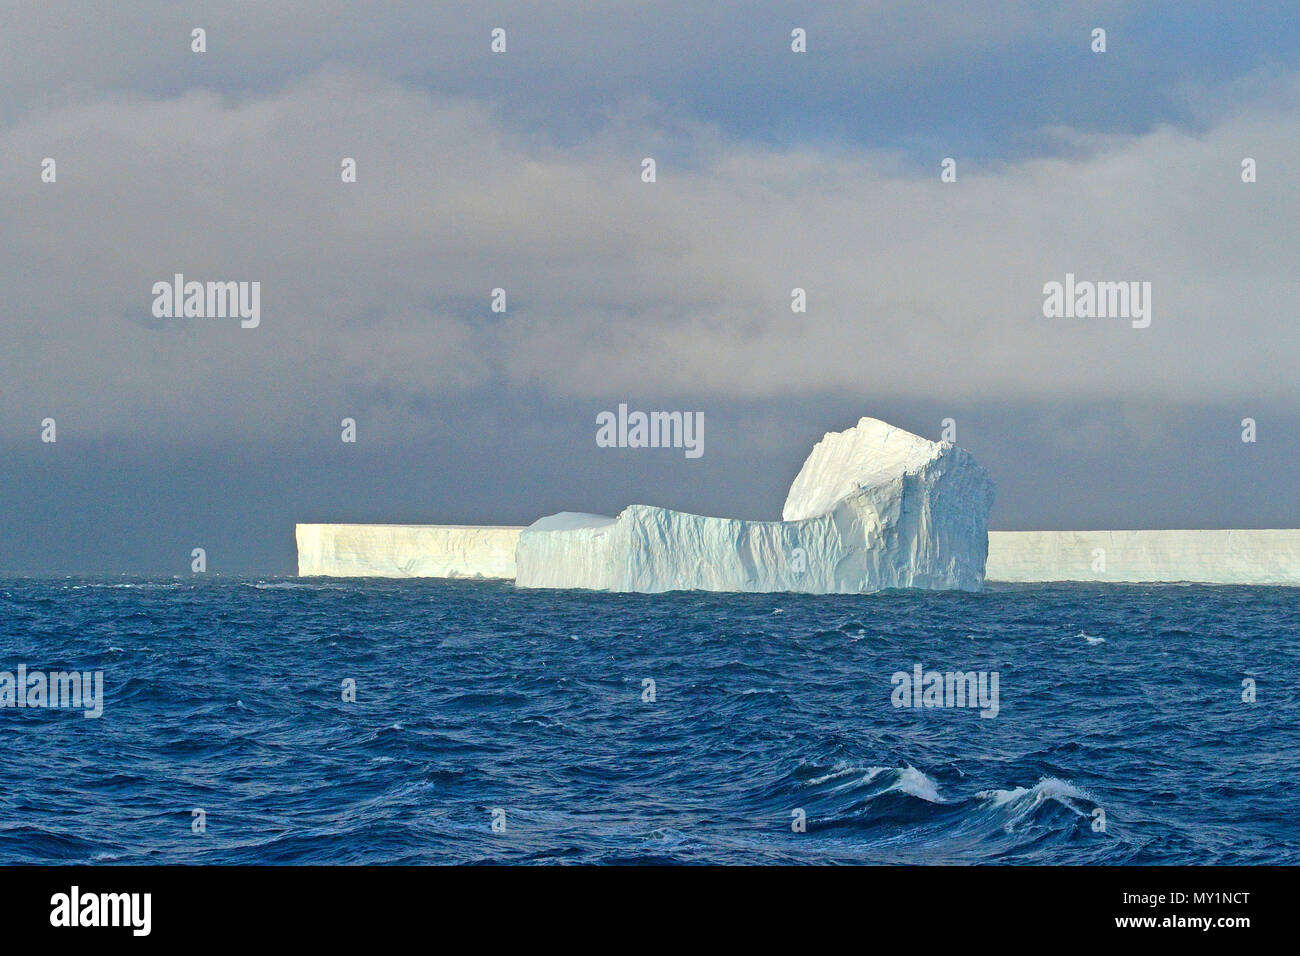 Drifting iceberg, Orkney Islands, Drake Passage,Antarctic peninsula, Antarctica - Stock Image